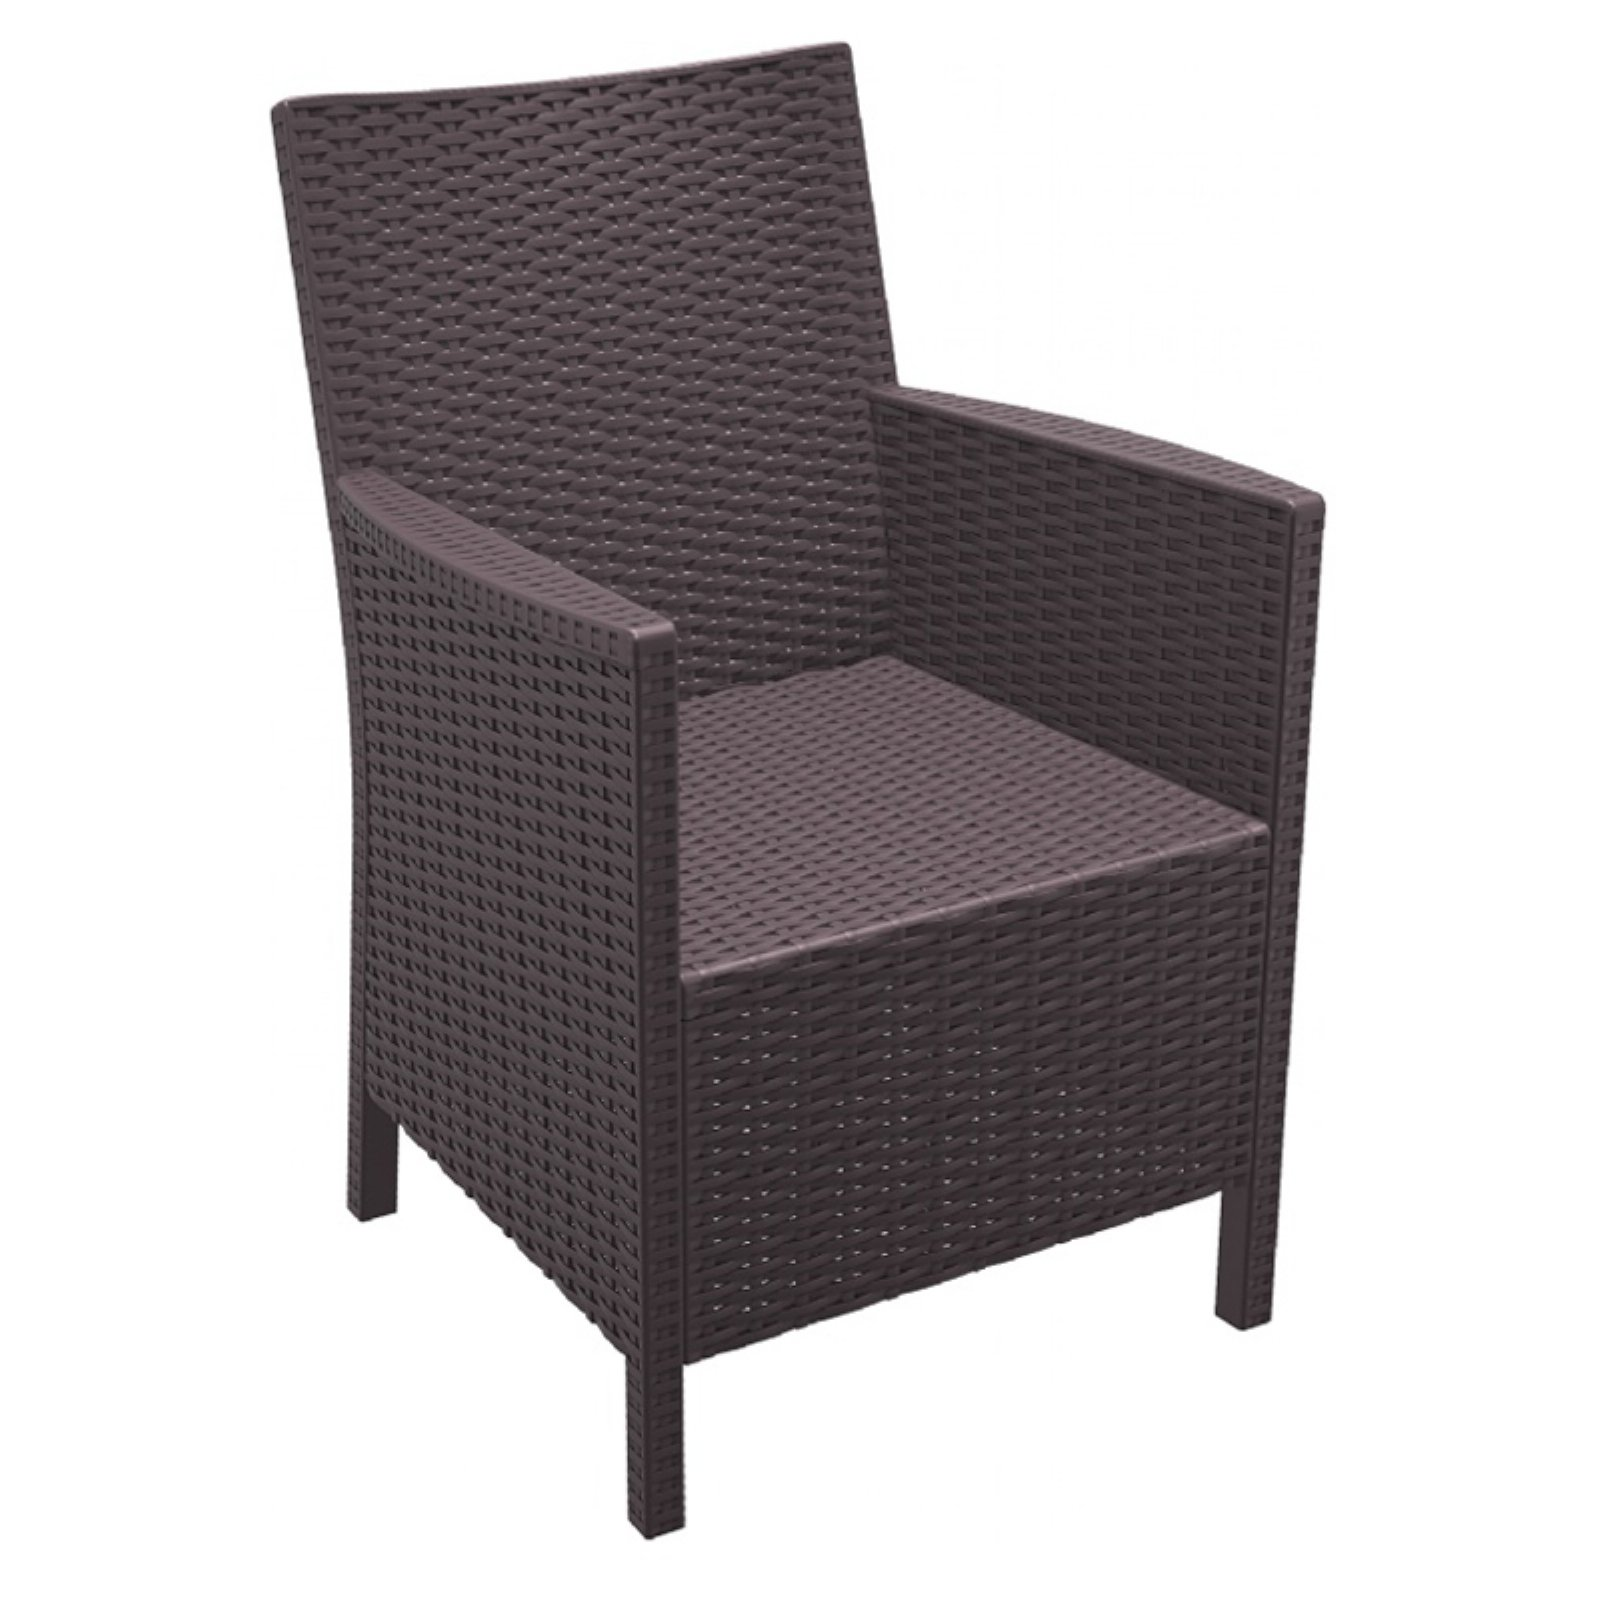 Compamia California Resin Wicker Chair Set of 2 by Compamia